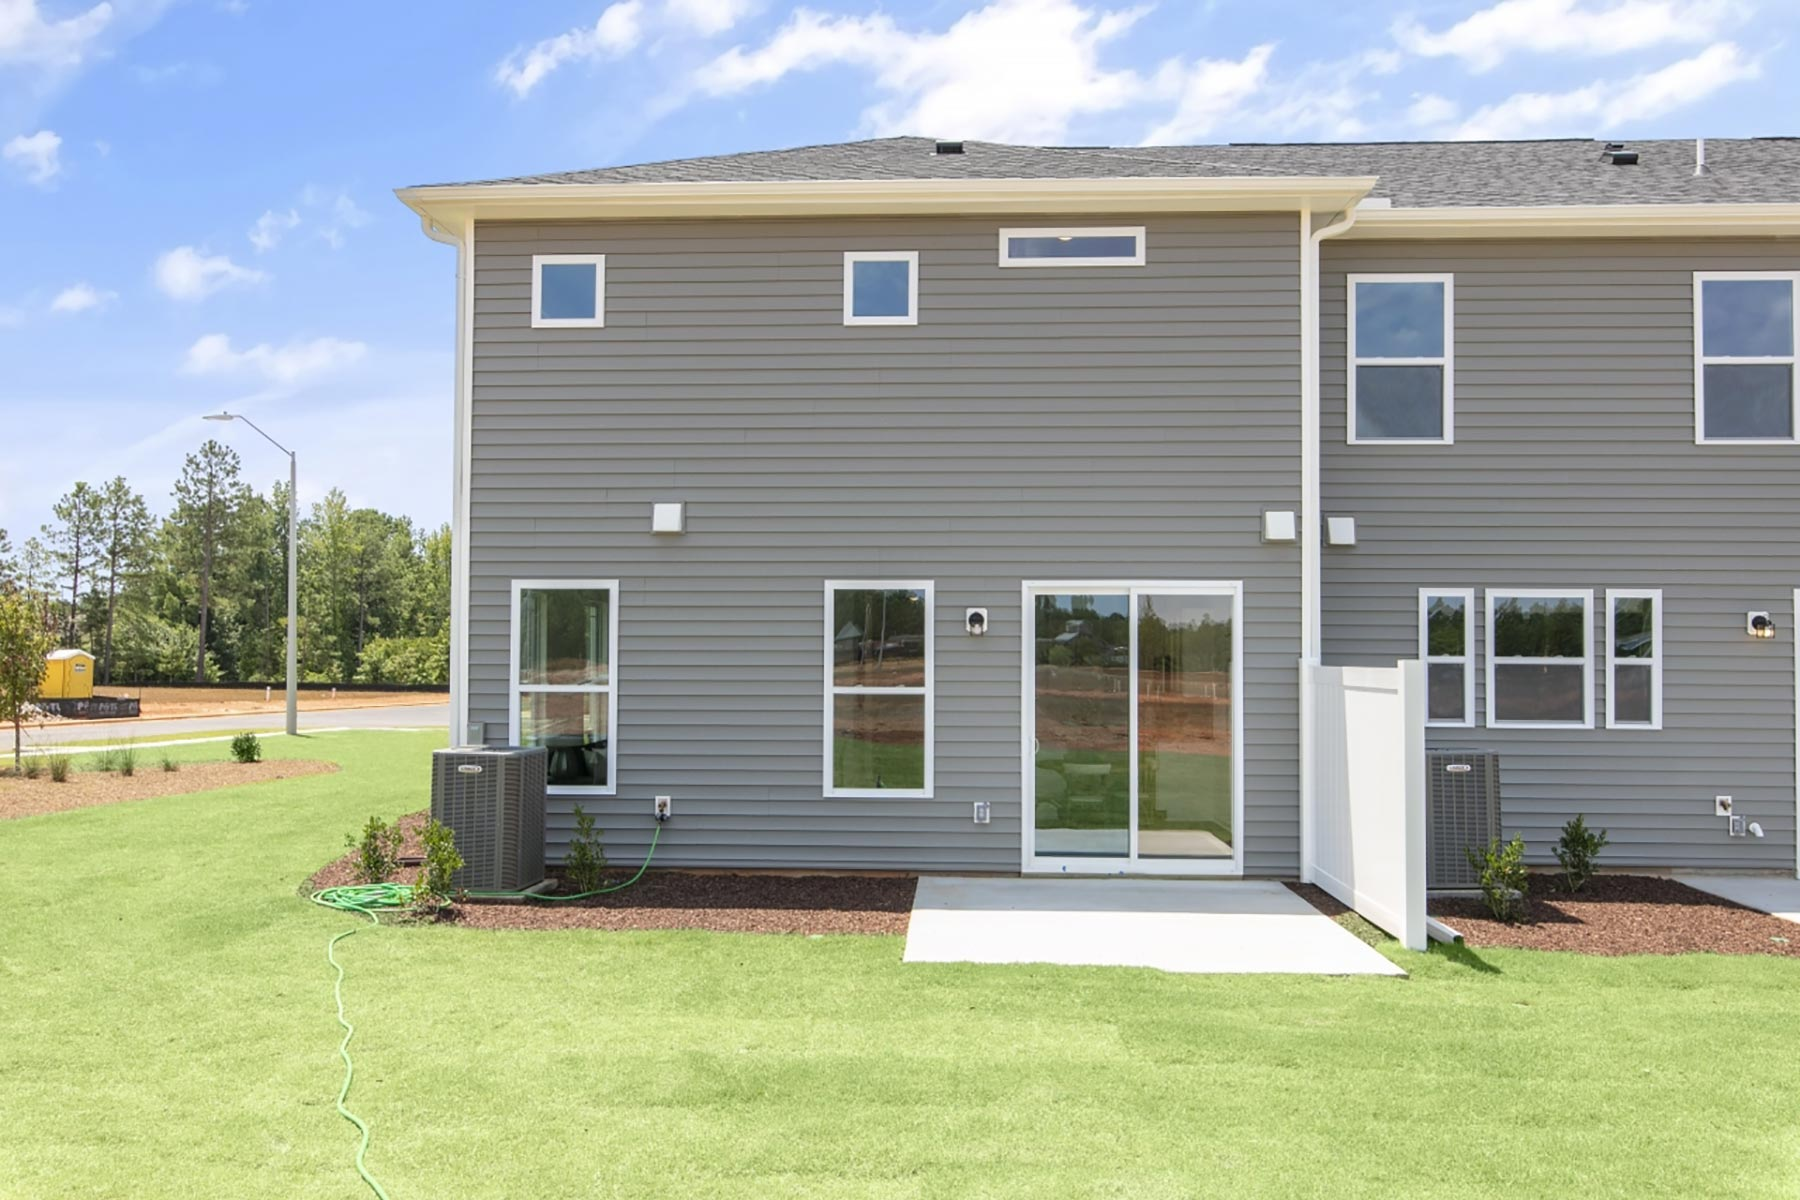 Clifton Plan Elevation Back Side at Minglewood Townhomes in Garner North Carolina by Mattamy Homes